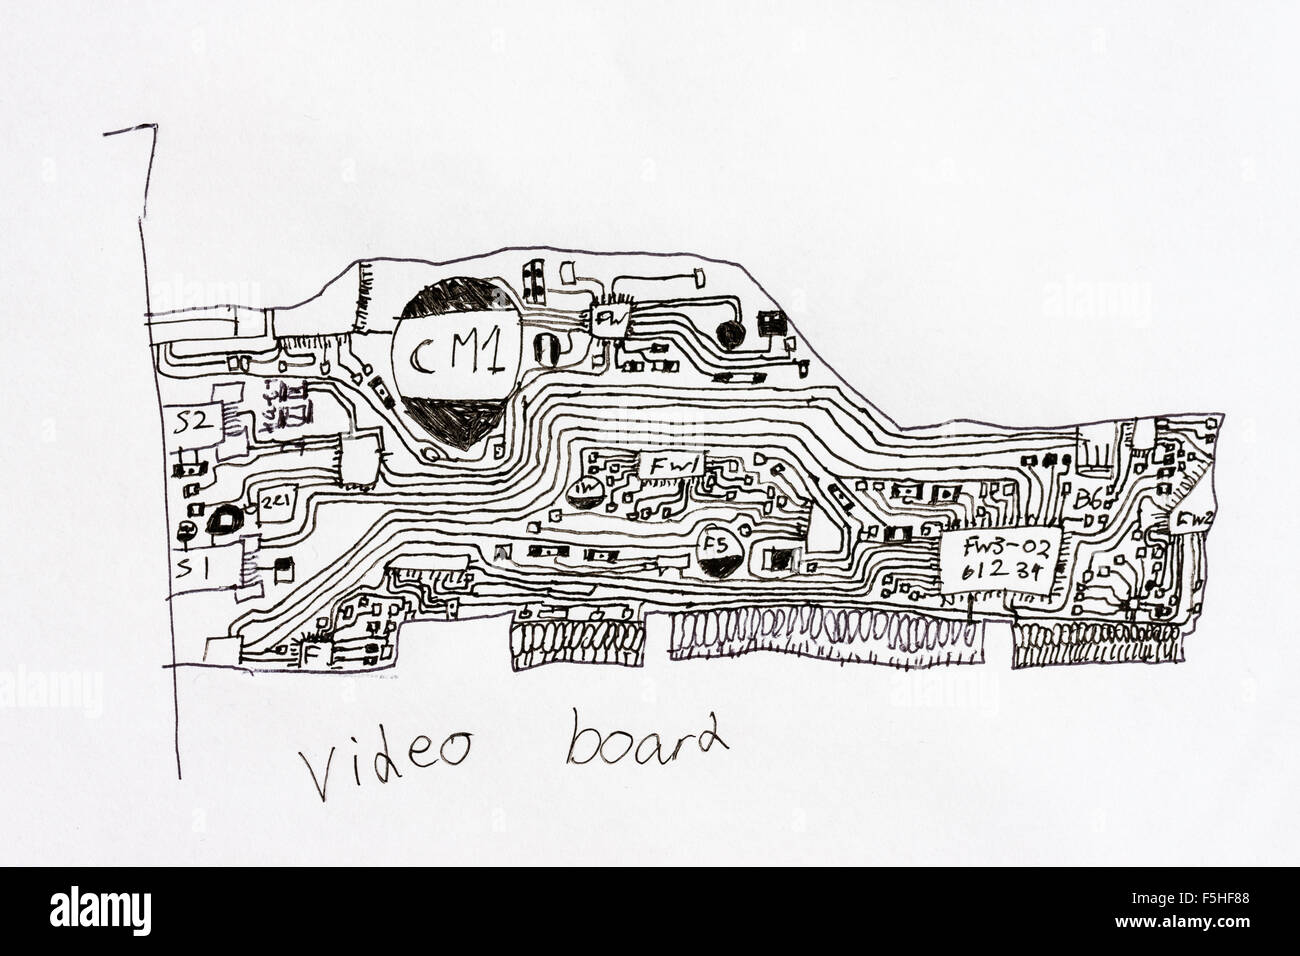 Computer graphics card. A Child's ink drawing of a graphics card from a computer, showing back connection plate, - Stock Image